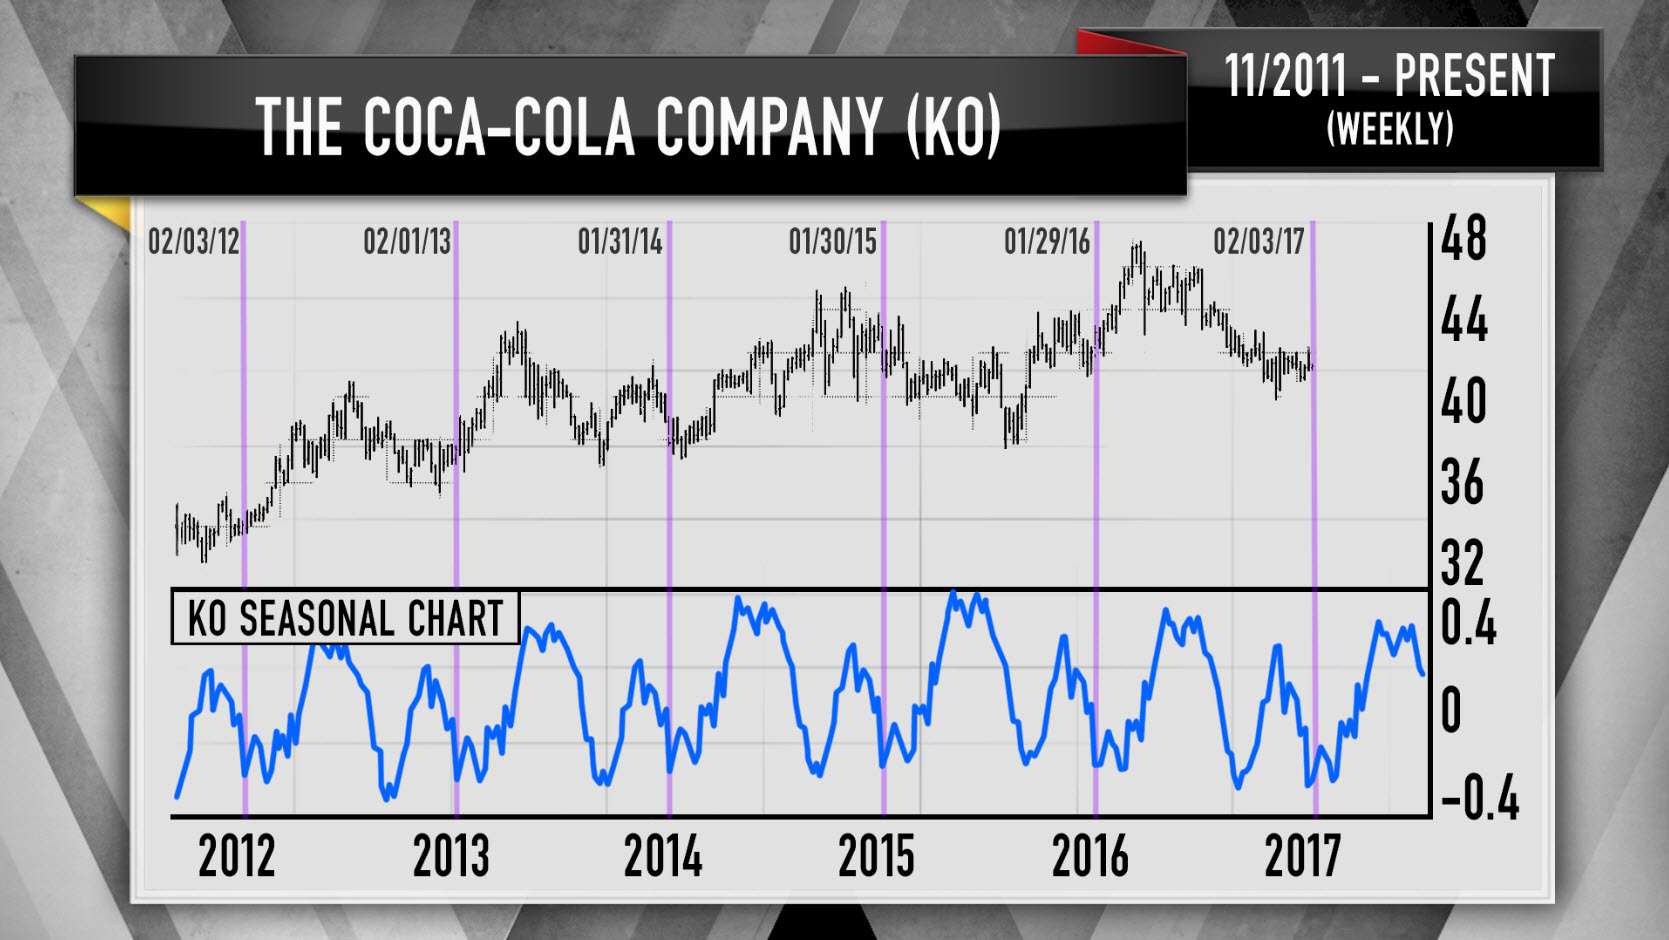 Cramer S Charts Predict Coca Cola On The Rise Thanks To Price Of Sugar